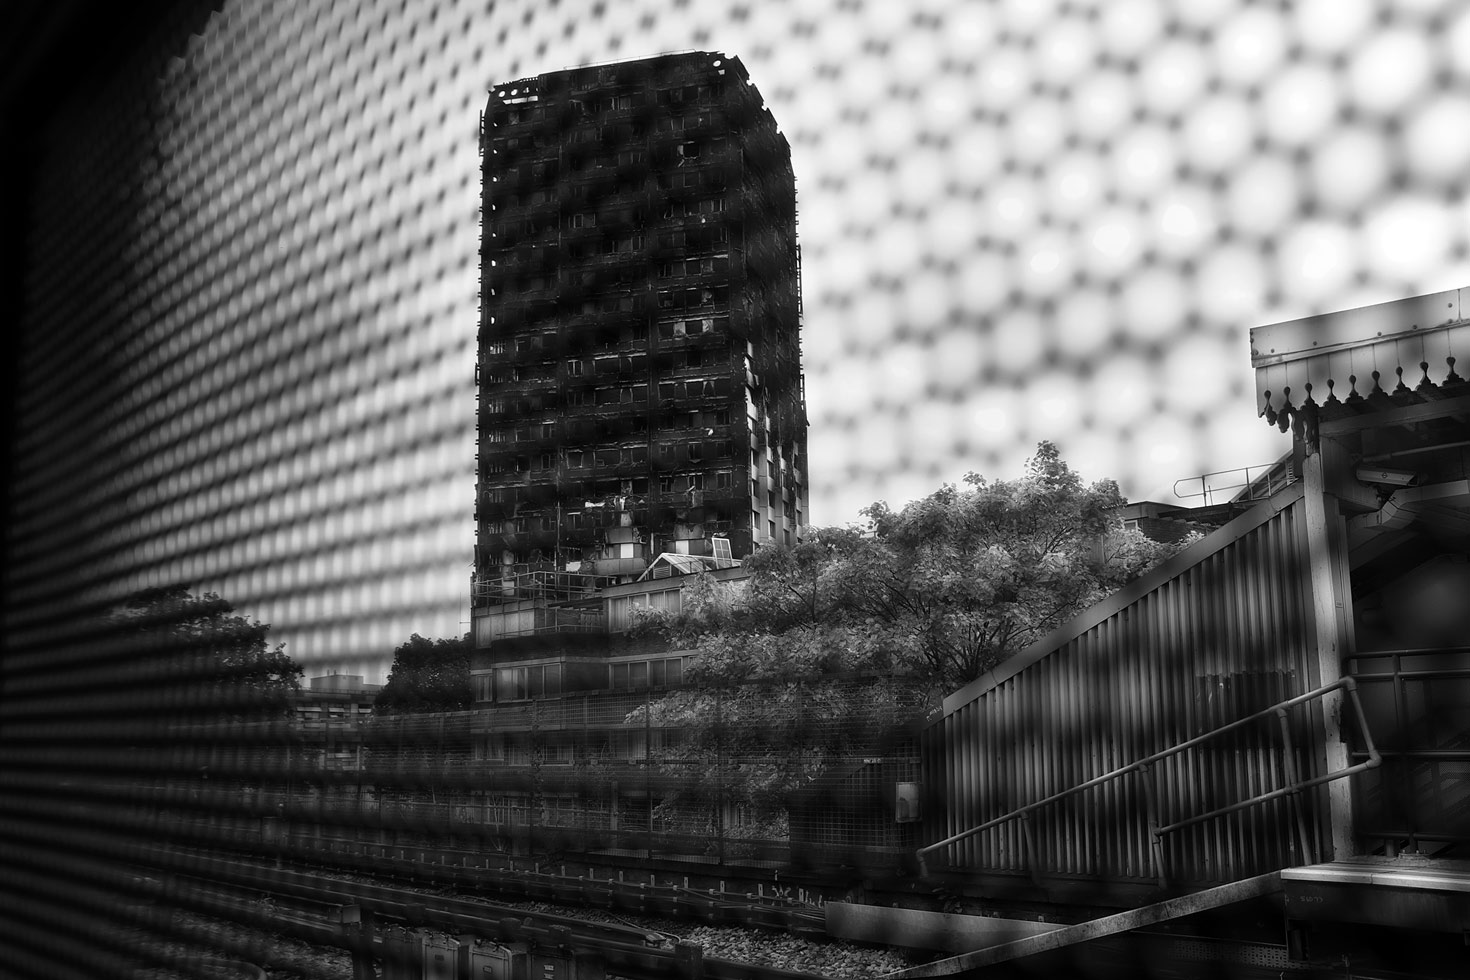 Grenfell Tower seen from Latimer Road tube station.